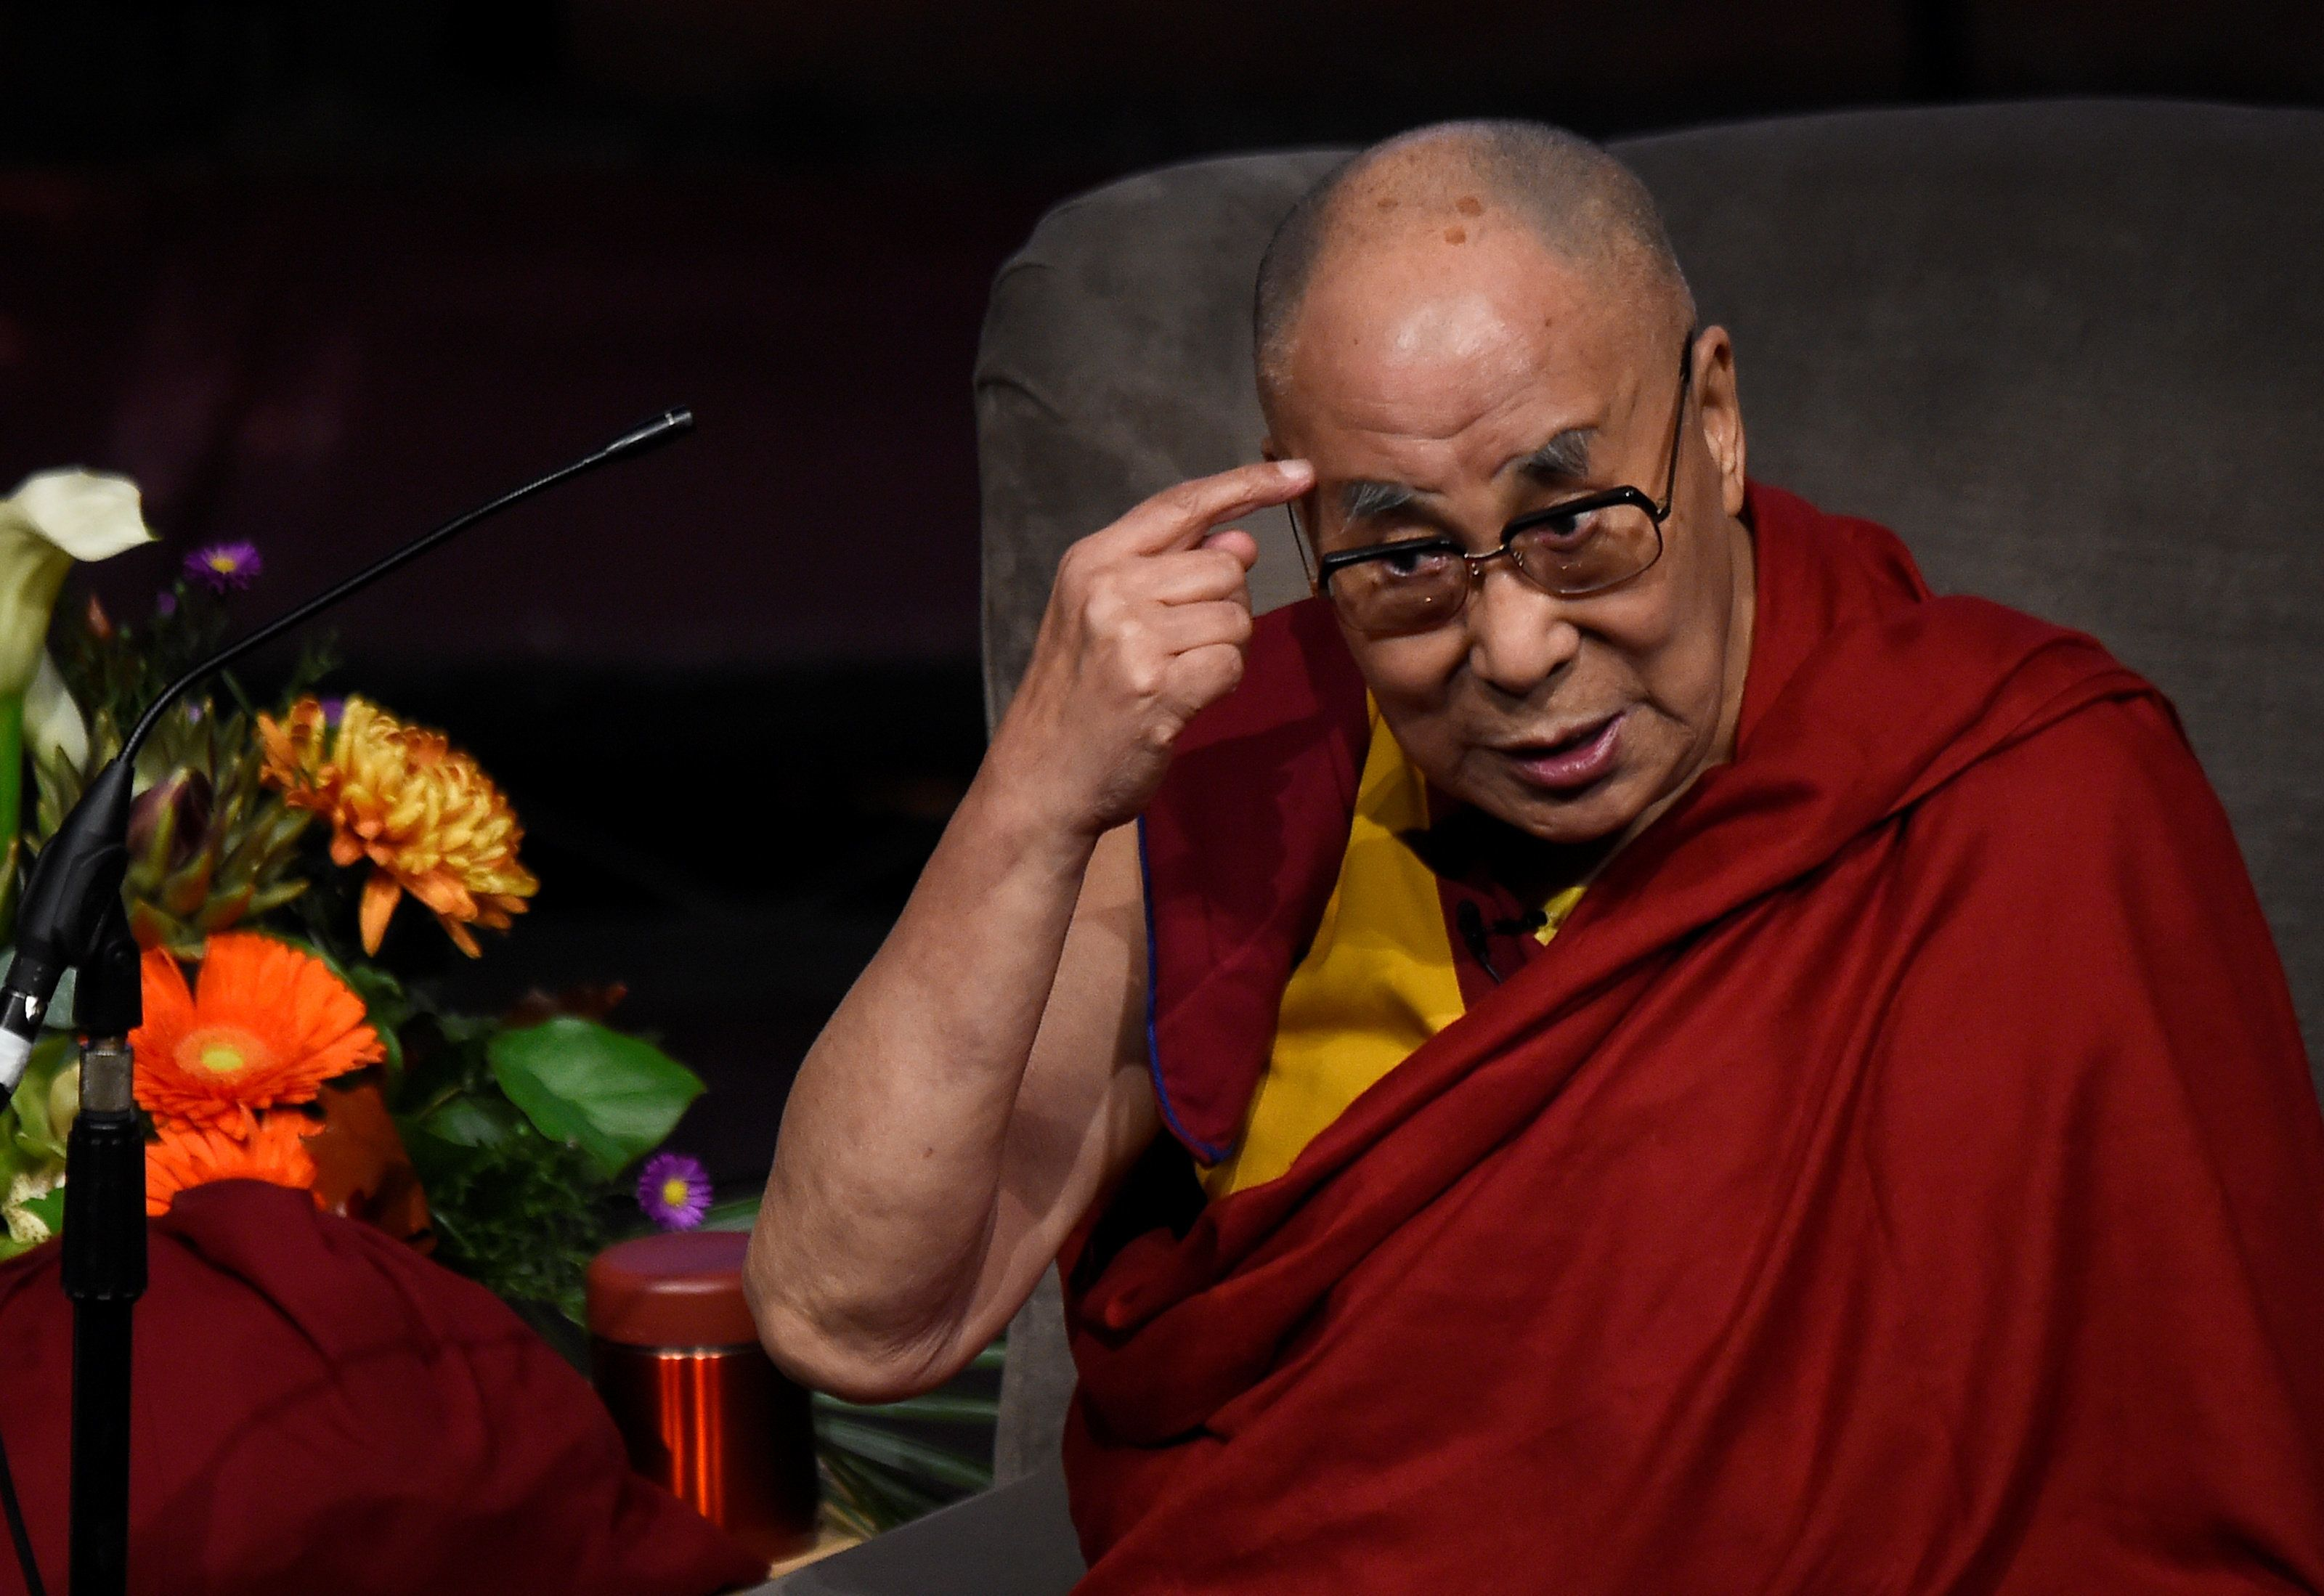 Tibetan spiritual leader the Dalai Lama, Patron of Children in Crossfire, gestures as he speaks at an event called 'Compassion in Action' in Londonderry, Northern Ireland September 10, 2017. REUTERS/Clodagh Kilcoyne